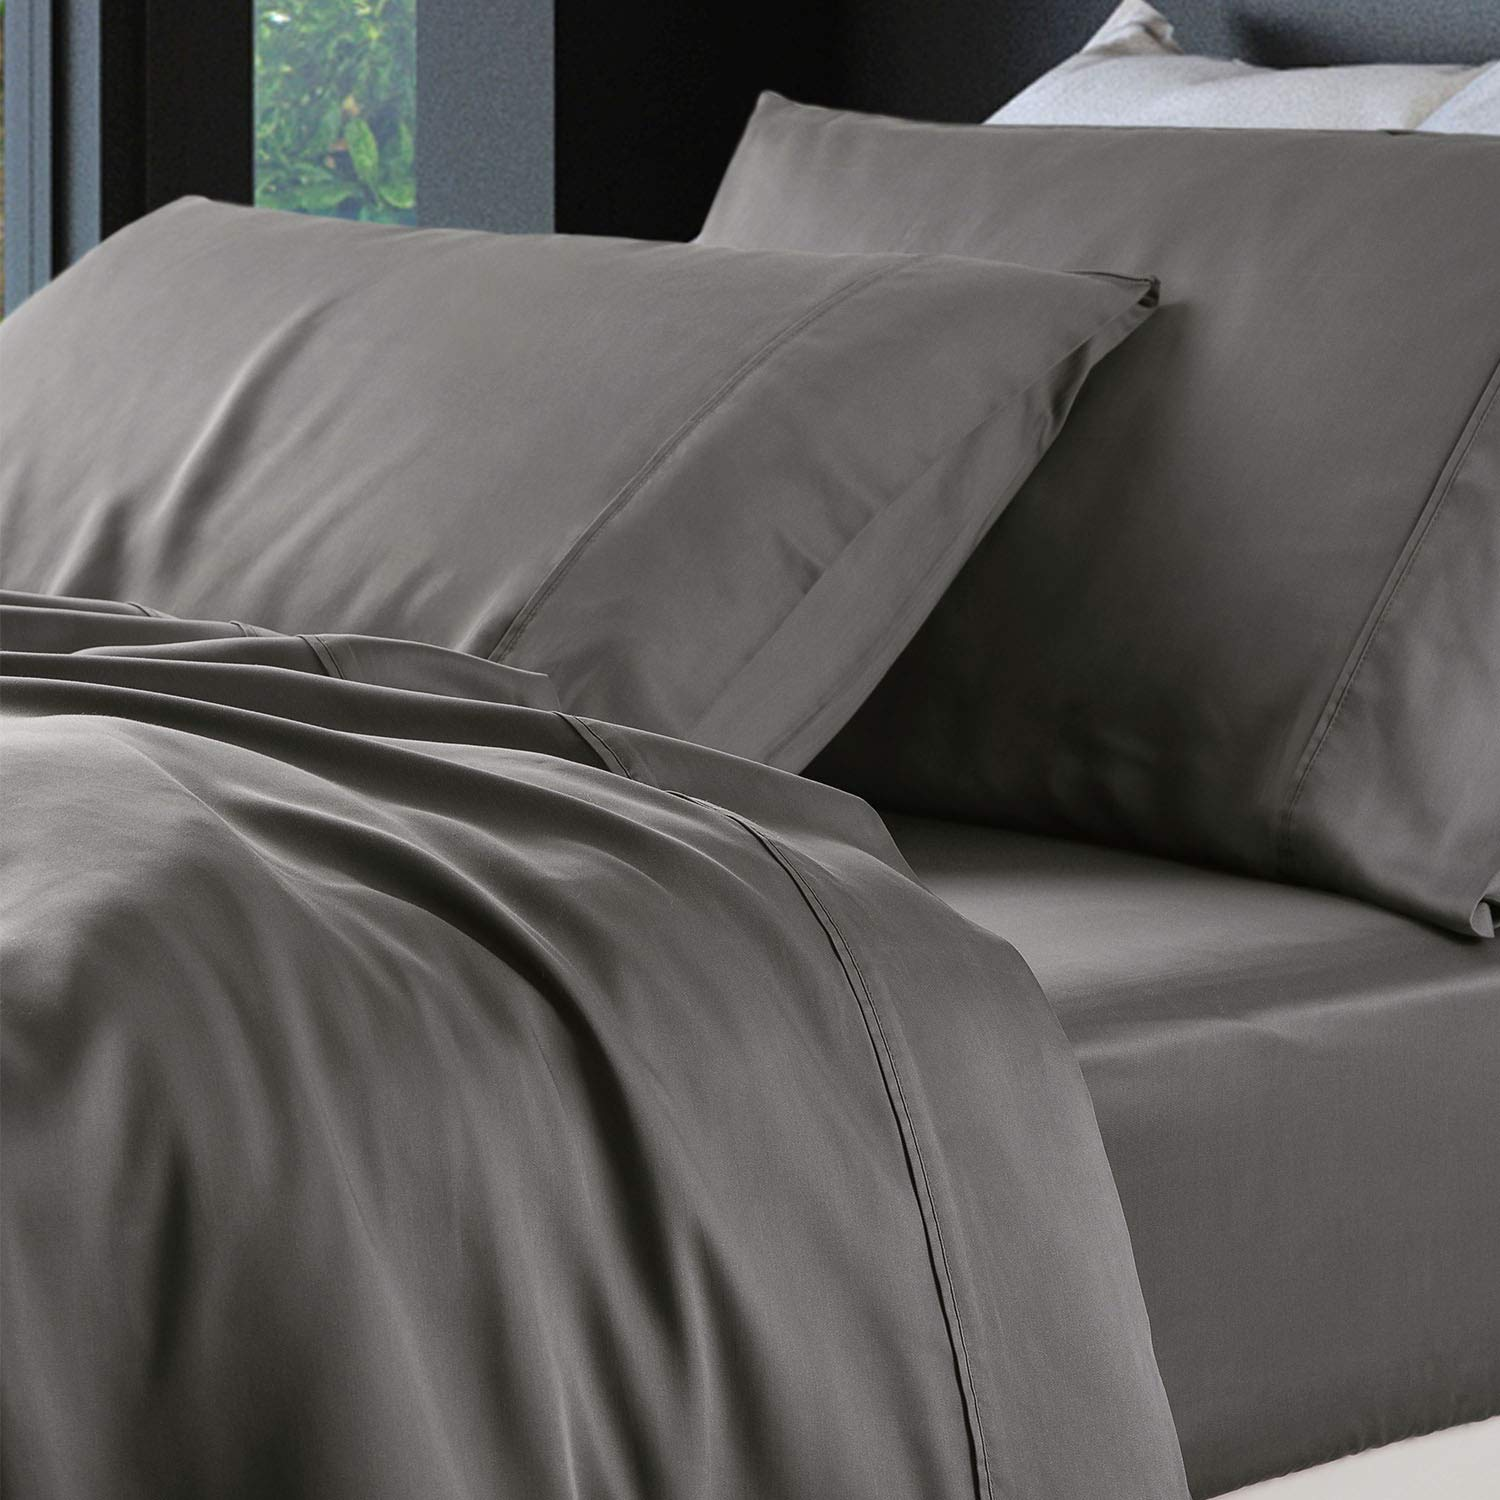 Amazon com bedsure bamboo bed sheet set queen size grey 100 bamboo viscose bed linen in gift box home kitchen